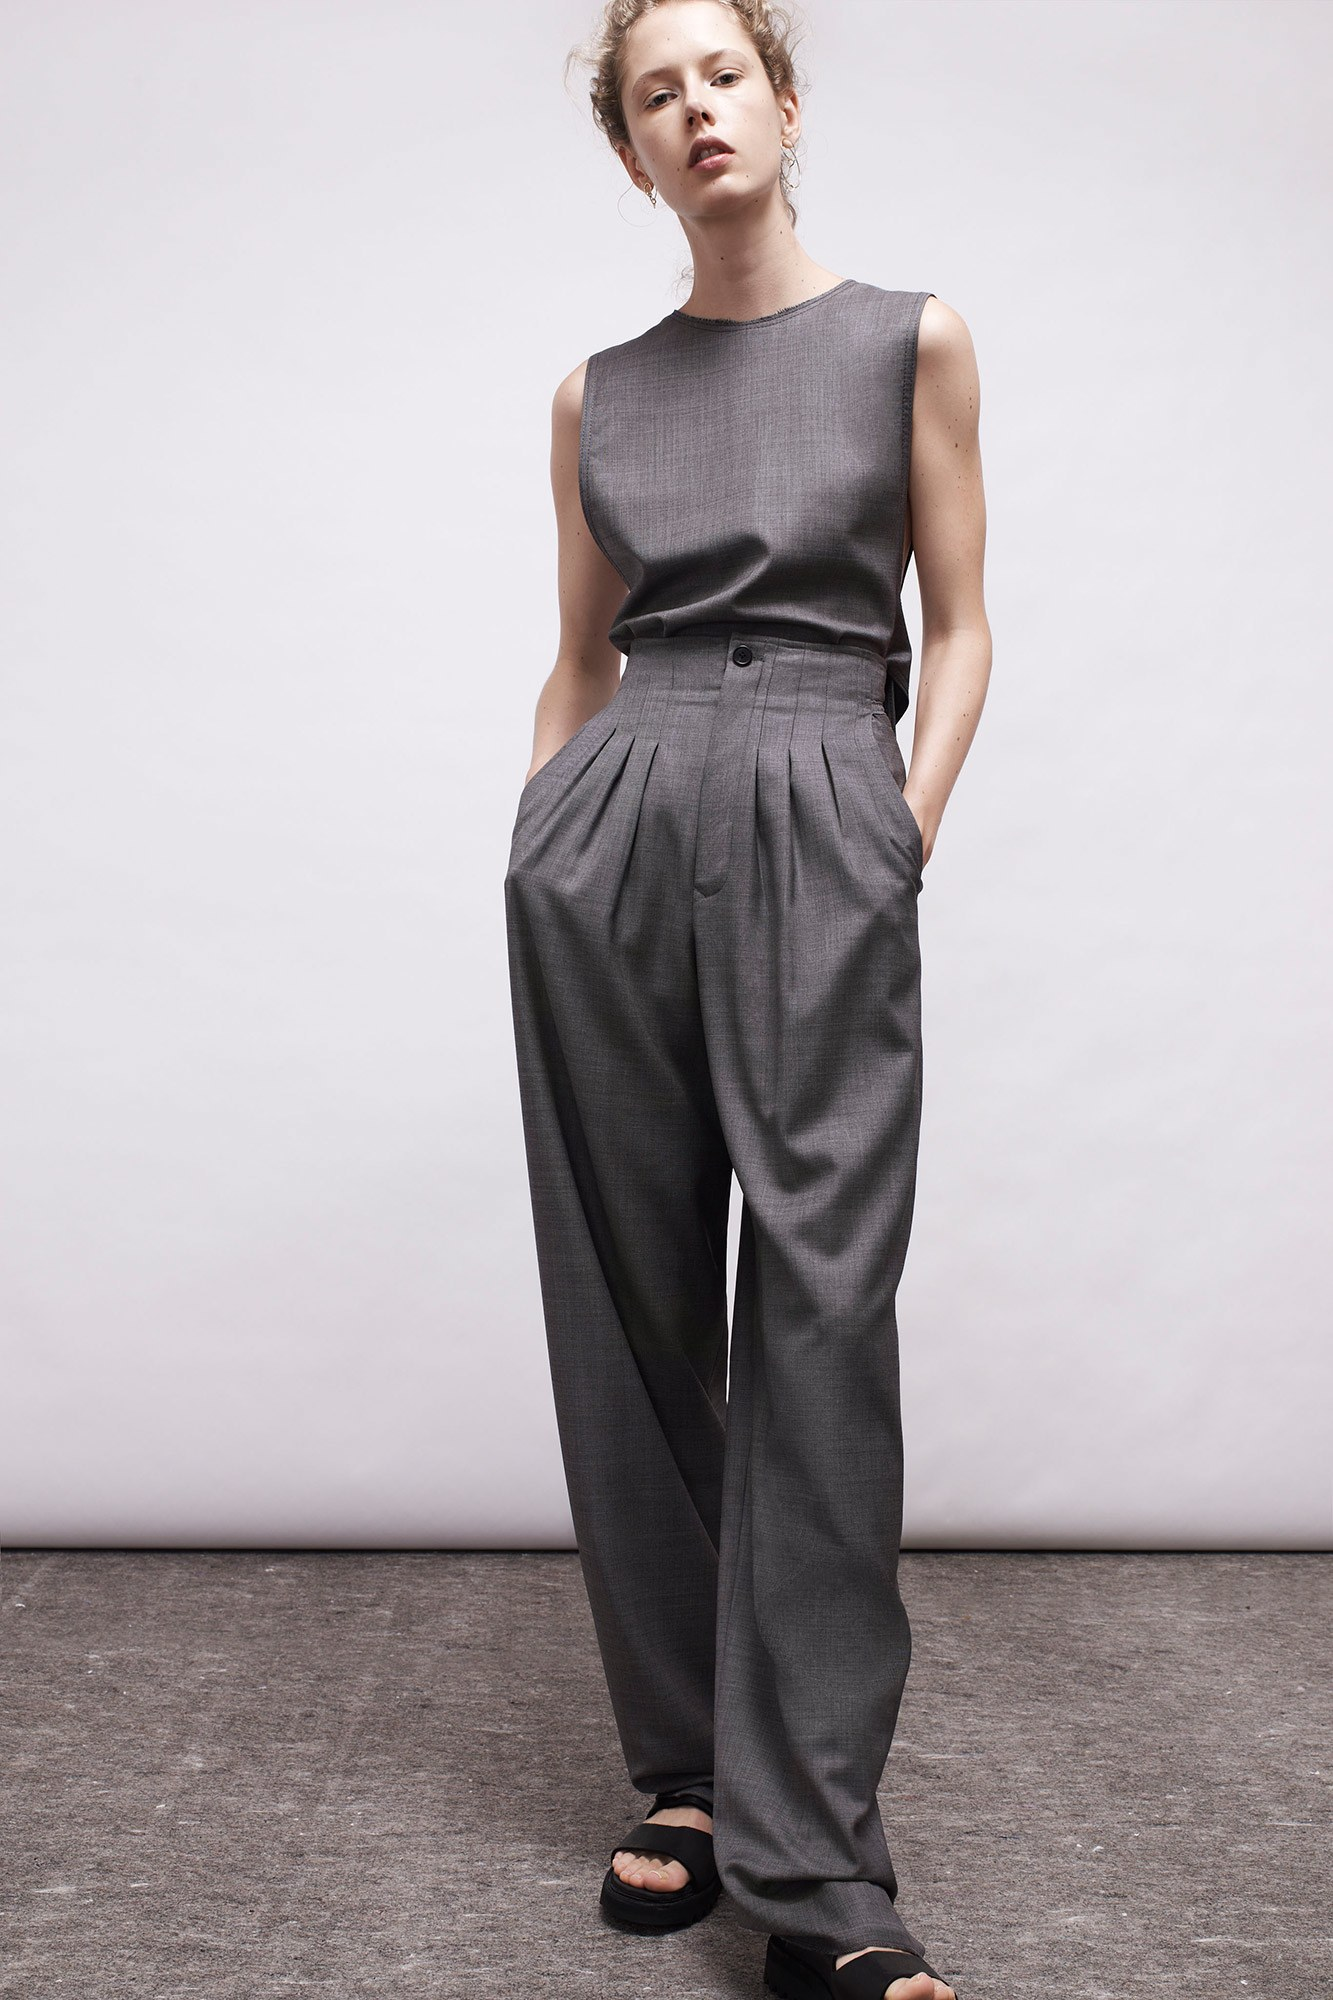 A monochromatic gray look with pleated high waist pants